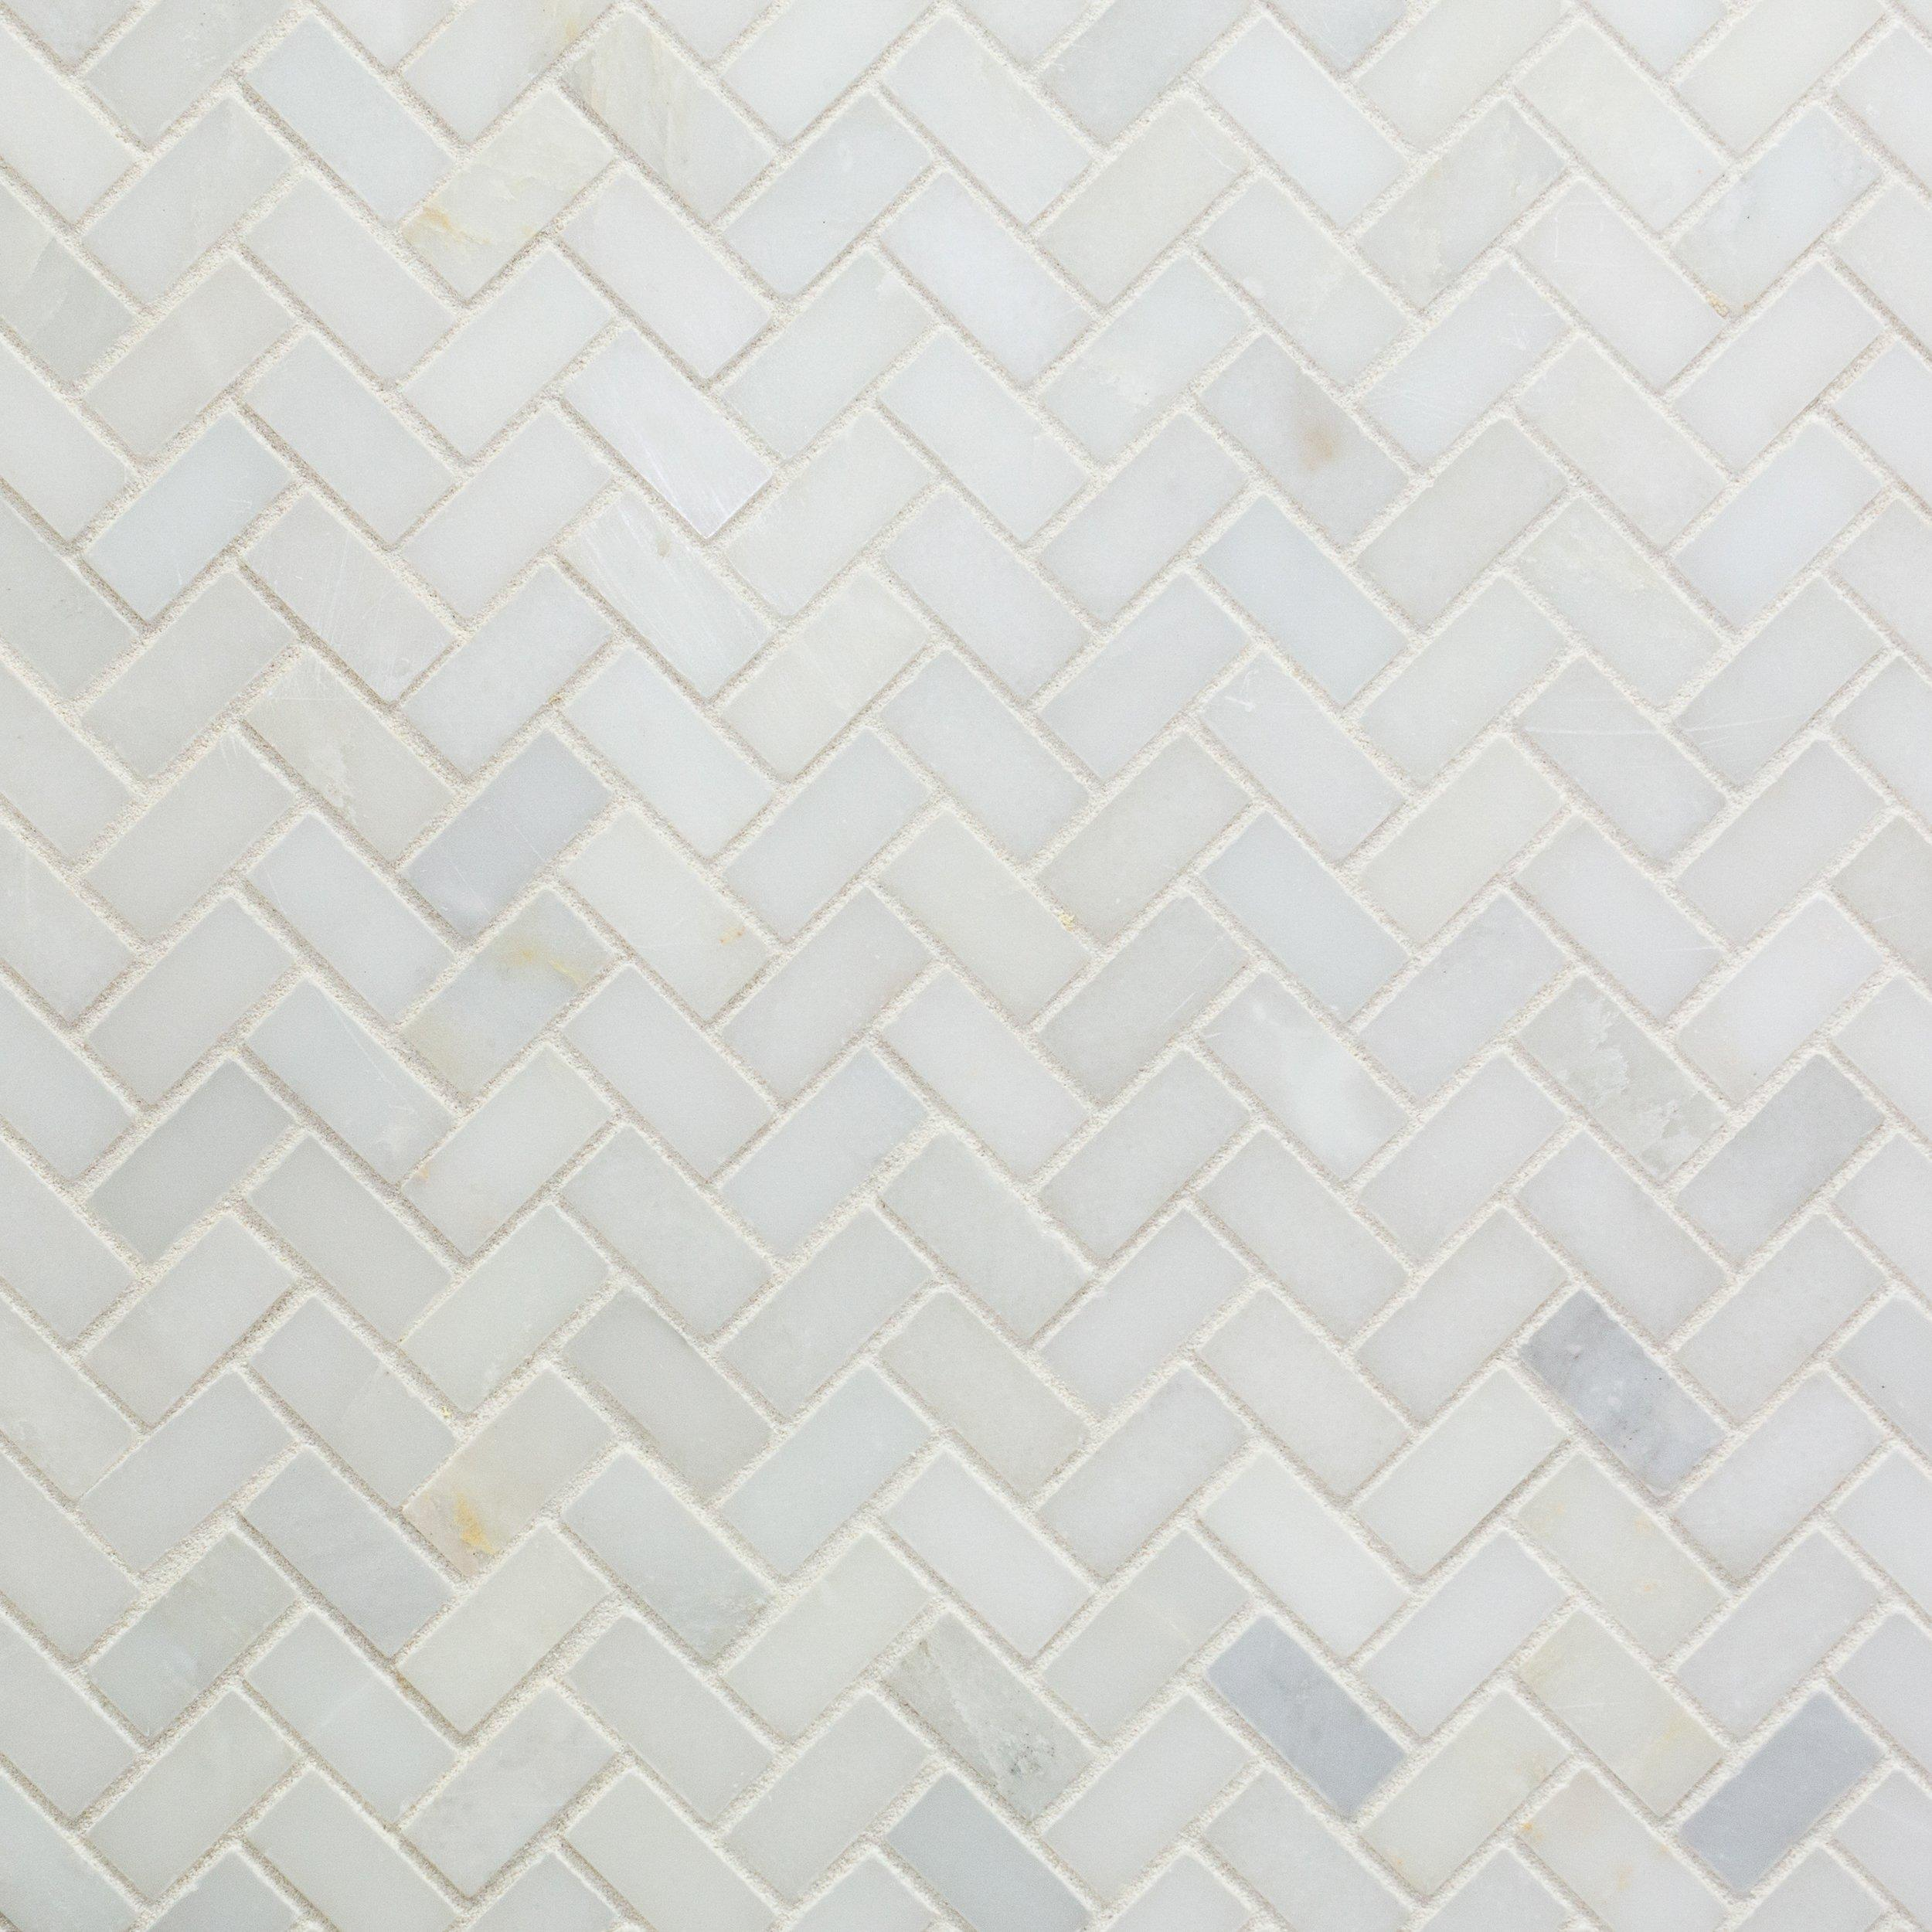 Carrara White Herringbone Marble Mosaic In